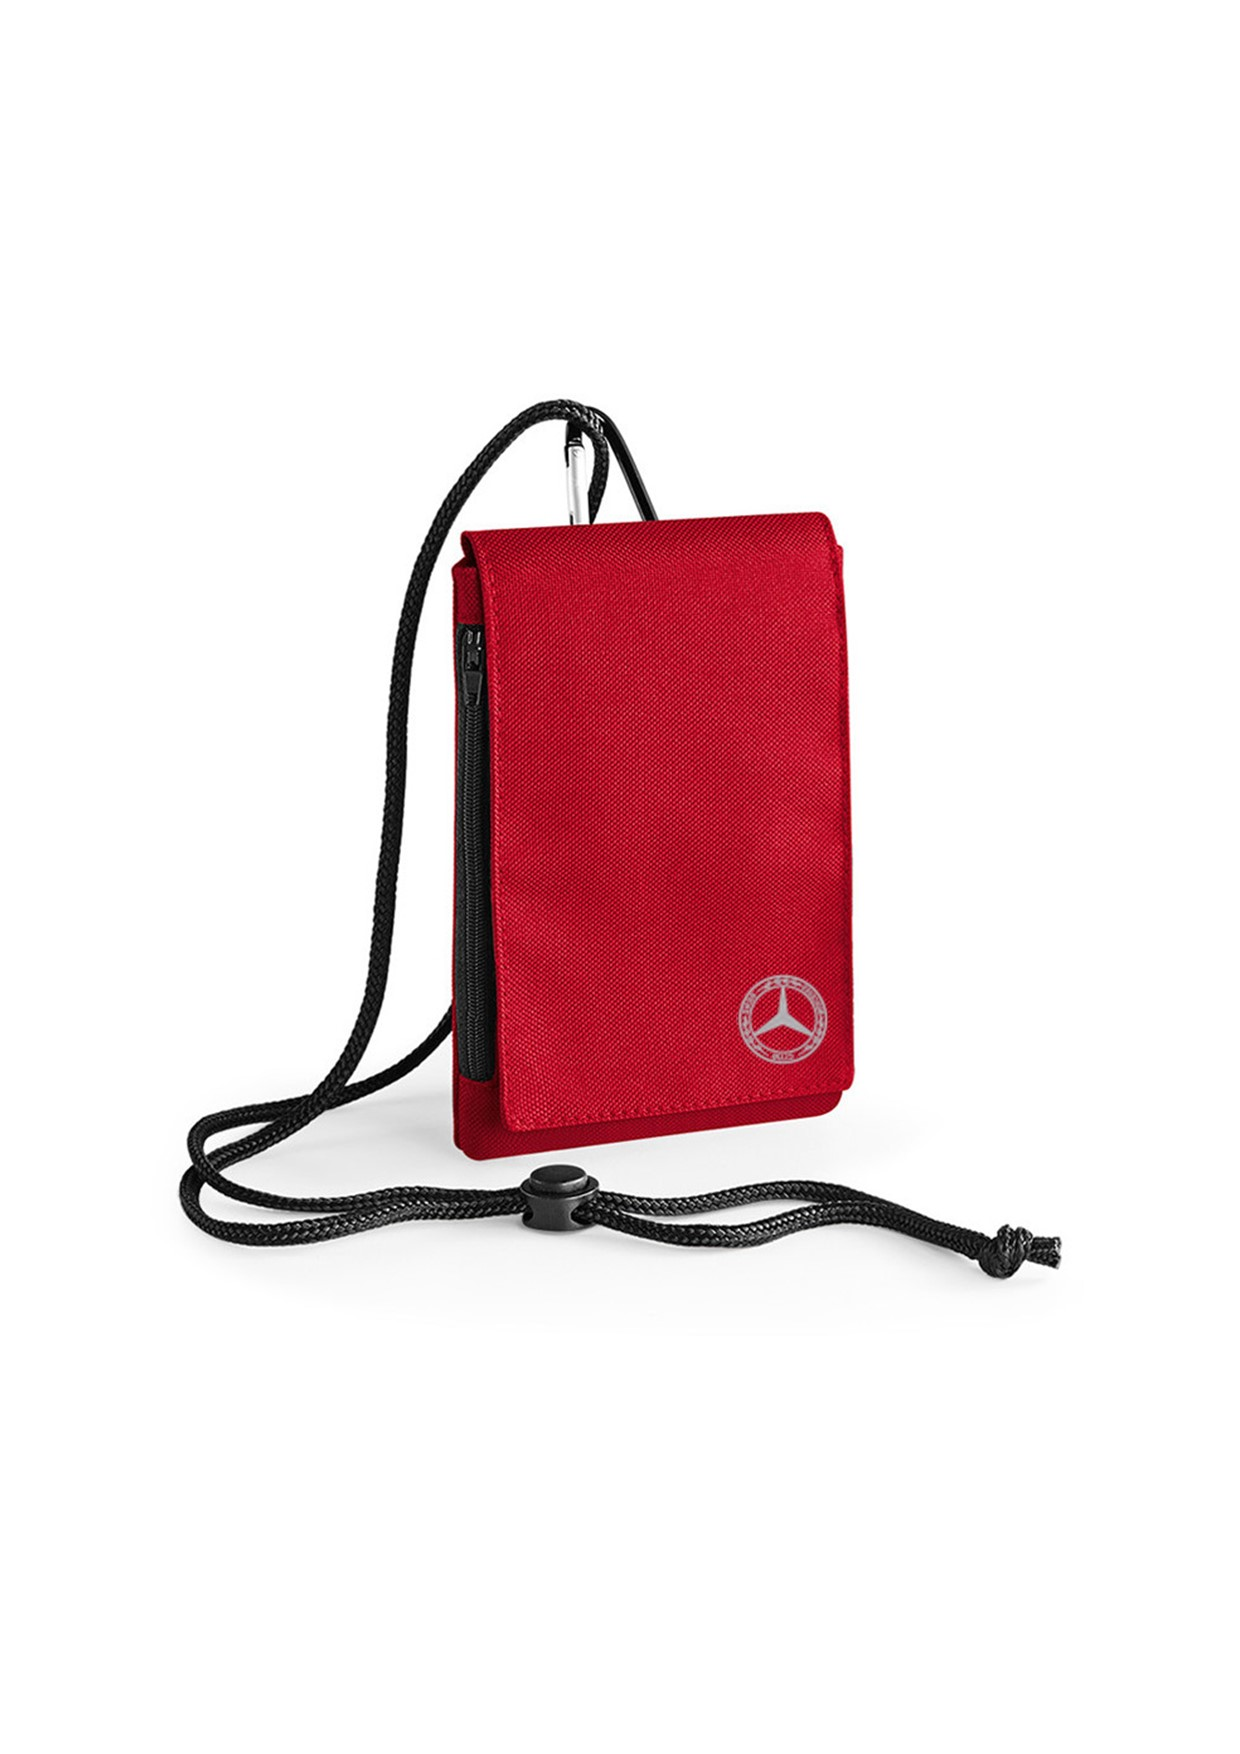 Mercedes-Benz Club XL Phone Bag